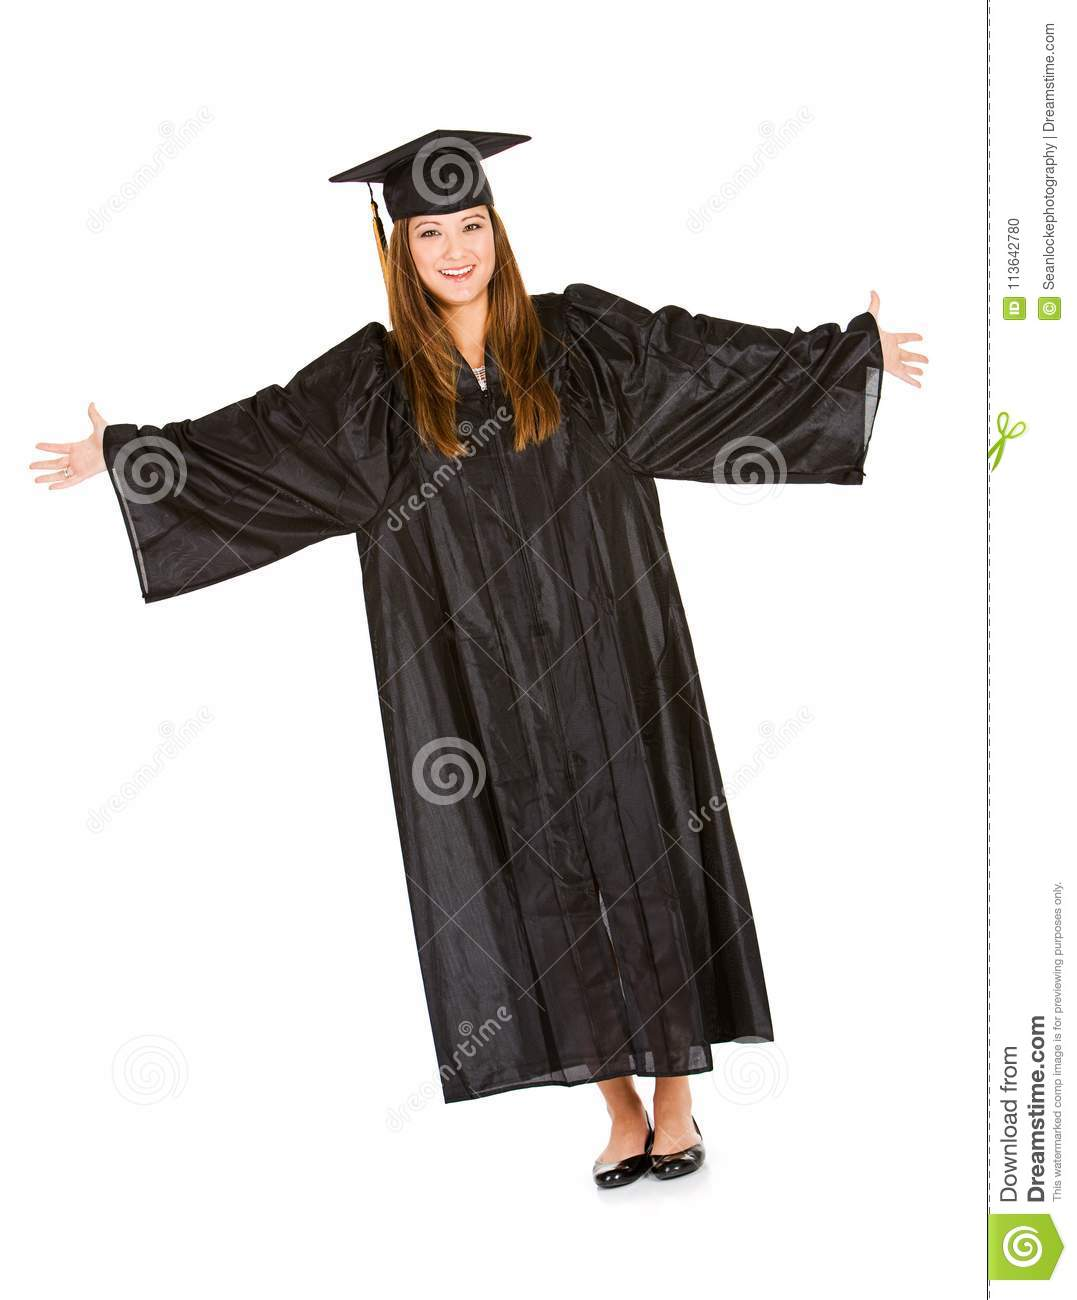 Graduate: Woman In Cap And Gown With Raised Hands Stock Photo ...